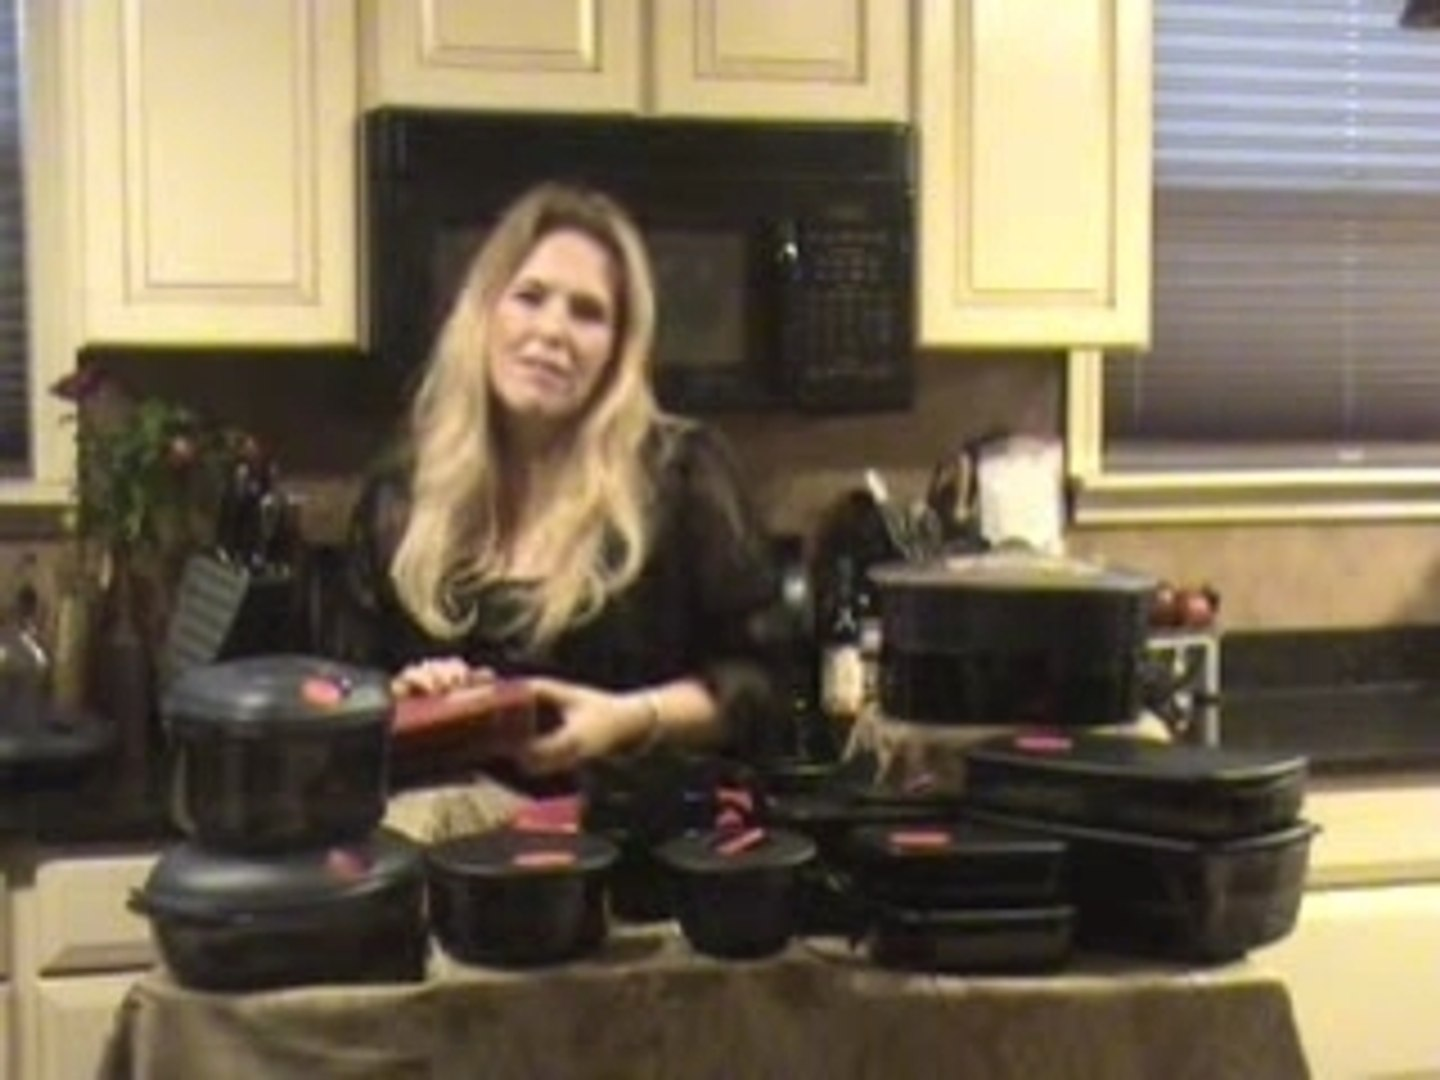 Tupperware Microwave Products